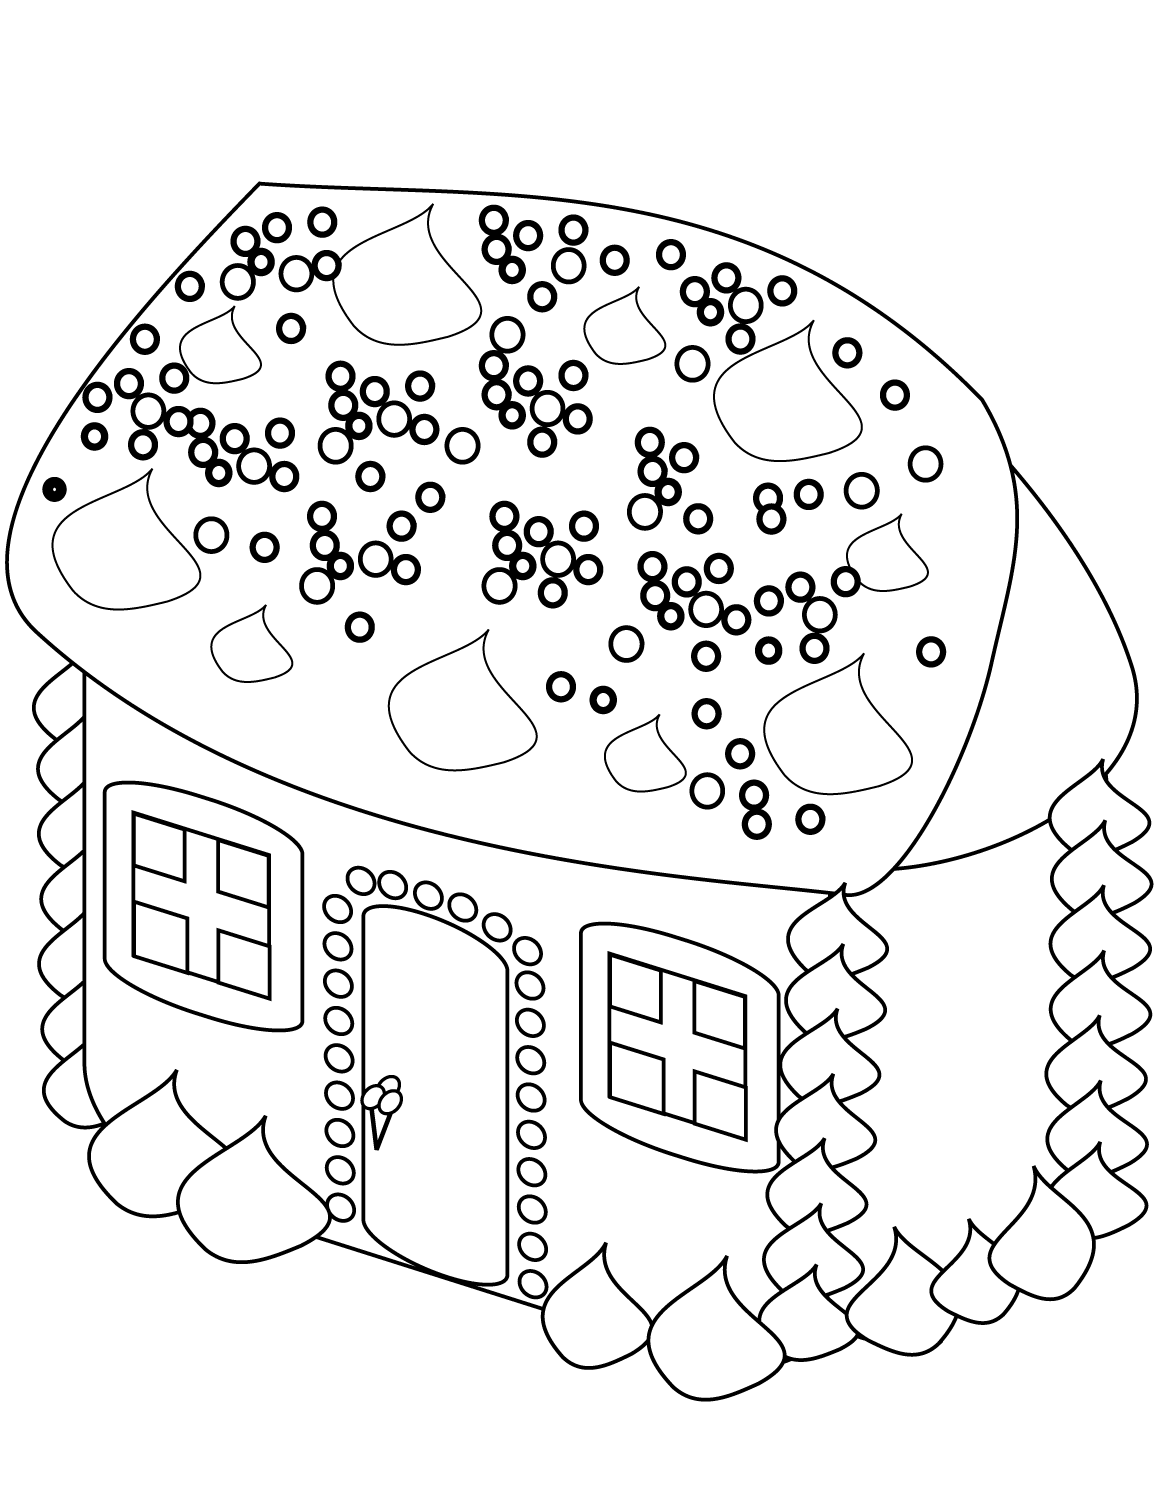 gingerbread house color page printable gingerbread house coloring pages for kids gingerbread house page color